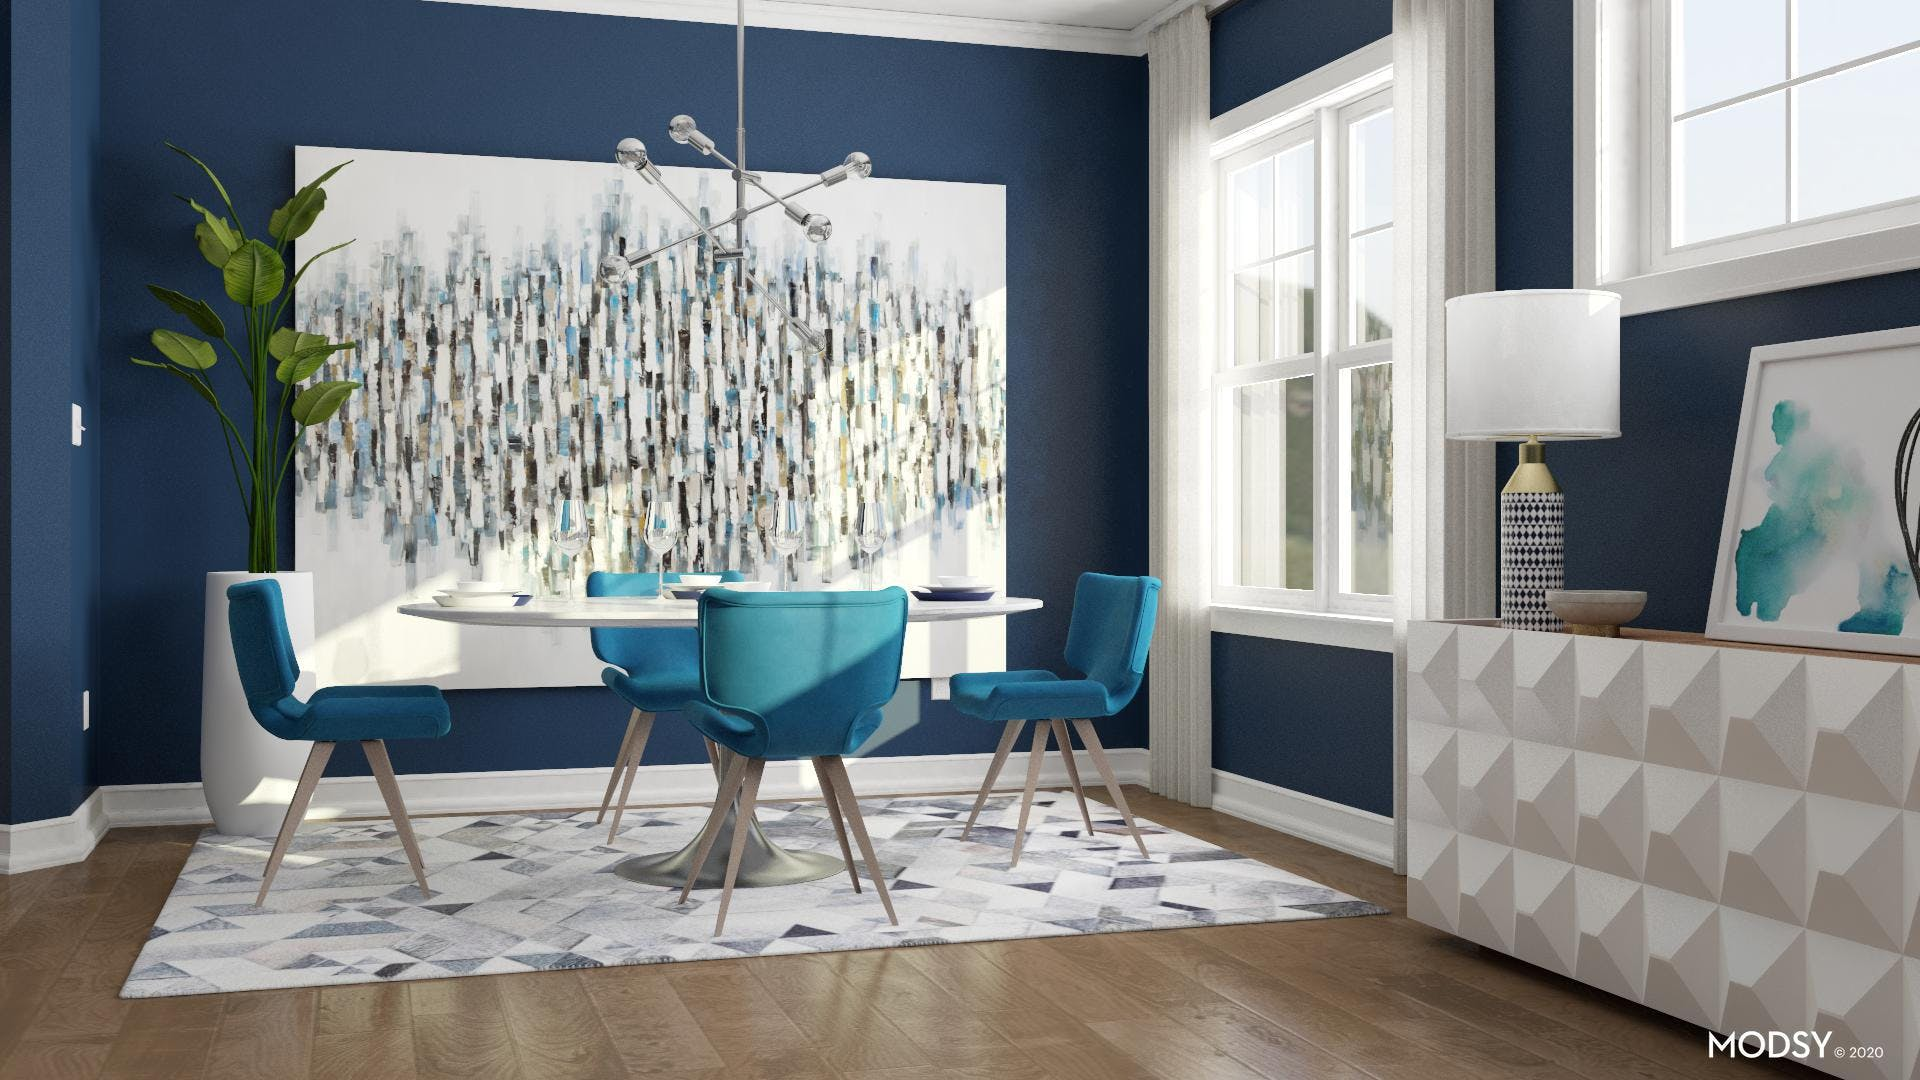 Oversized Art Makes The Dining Room